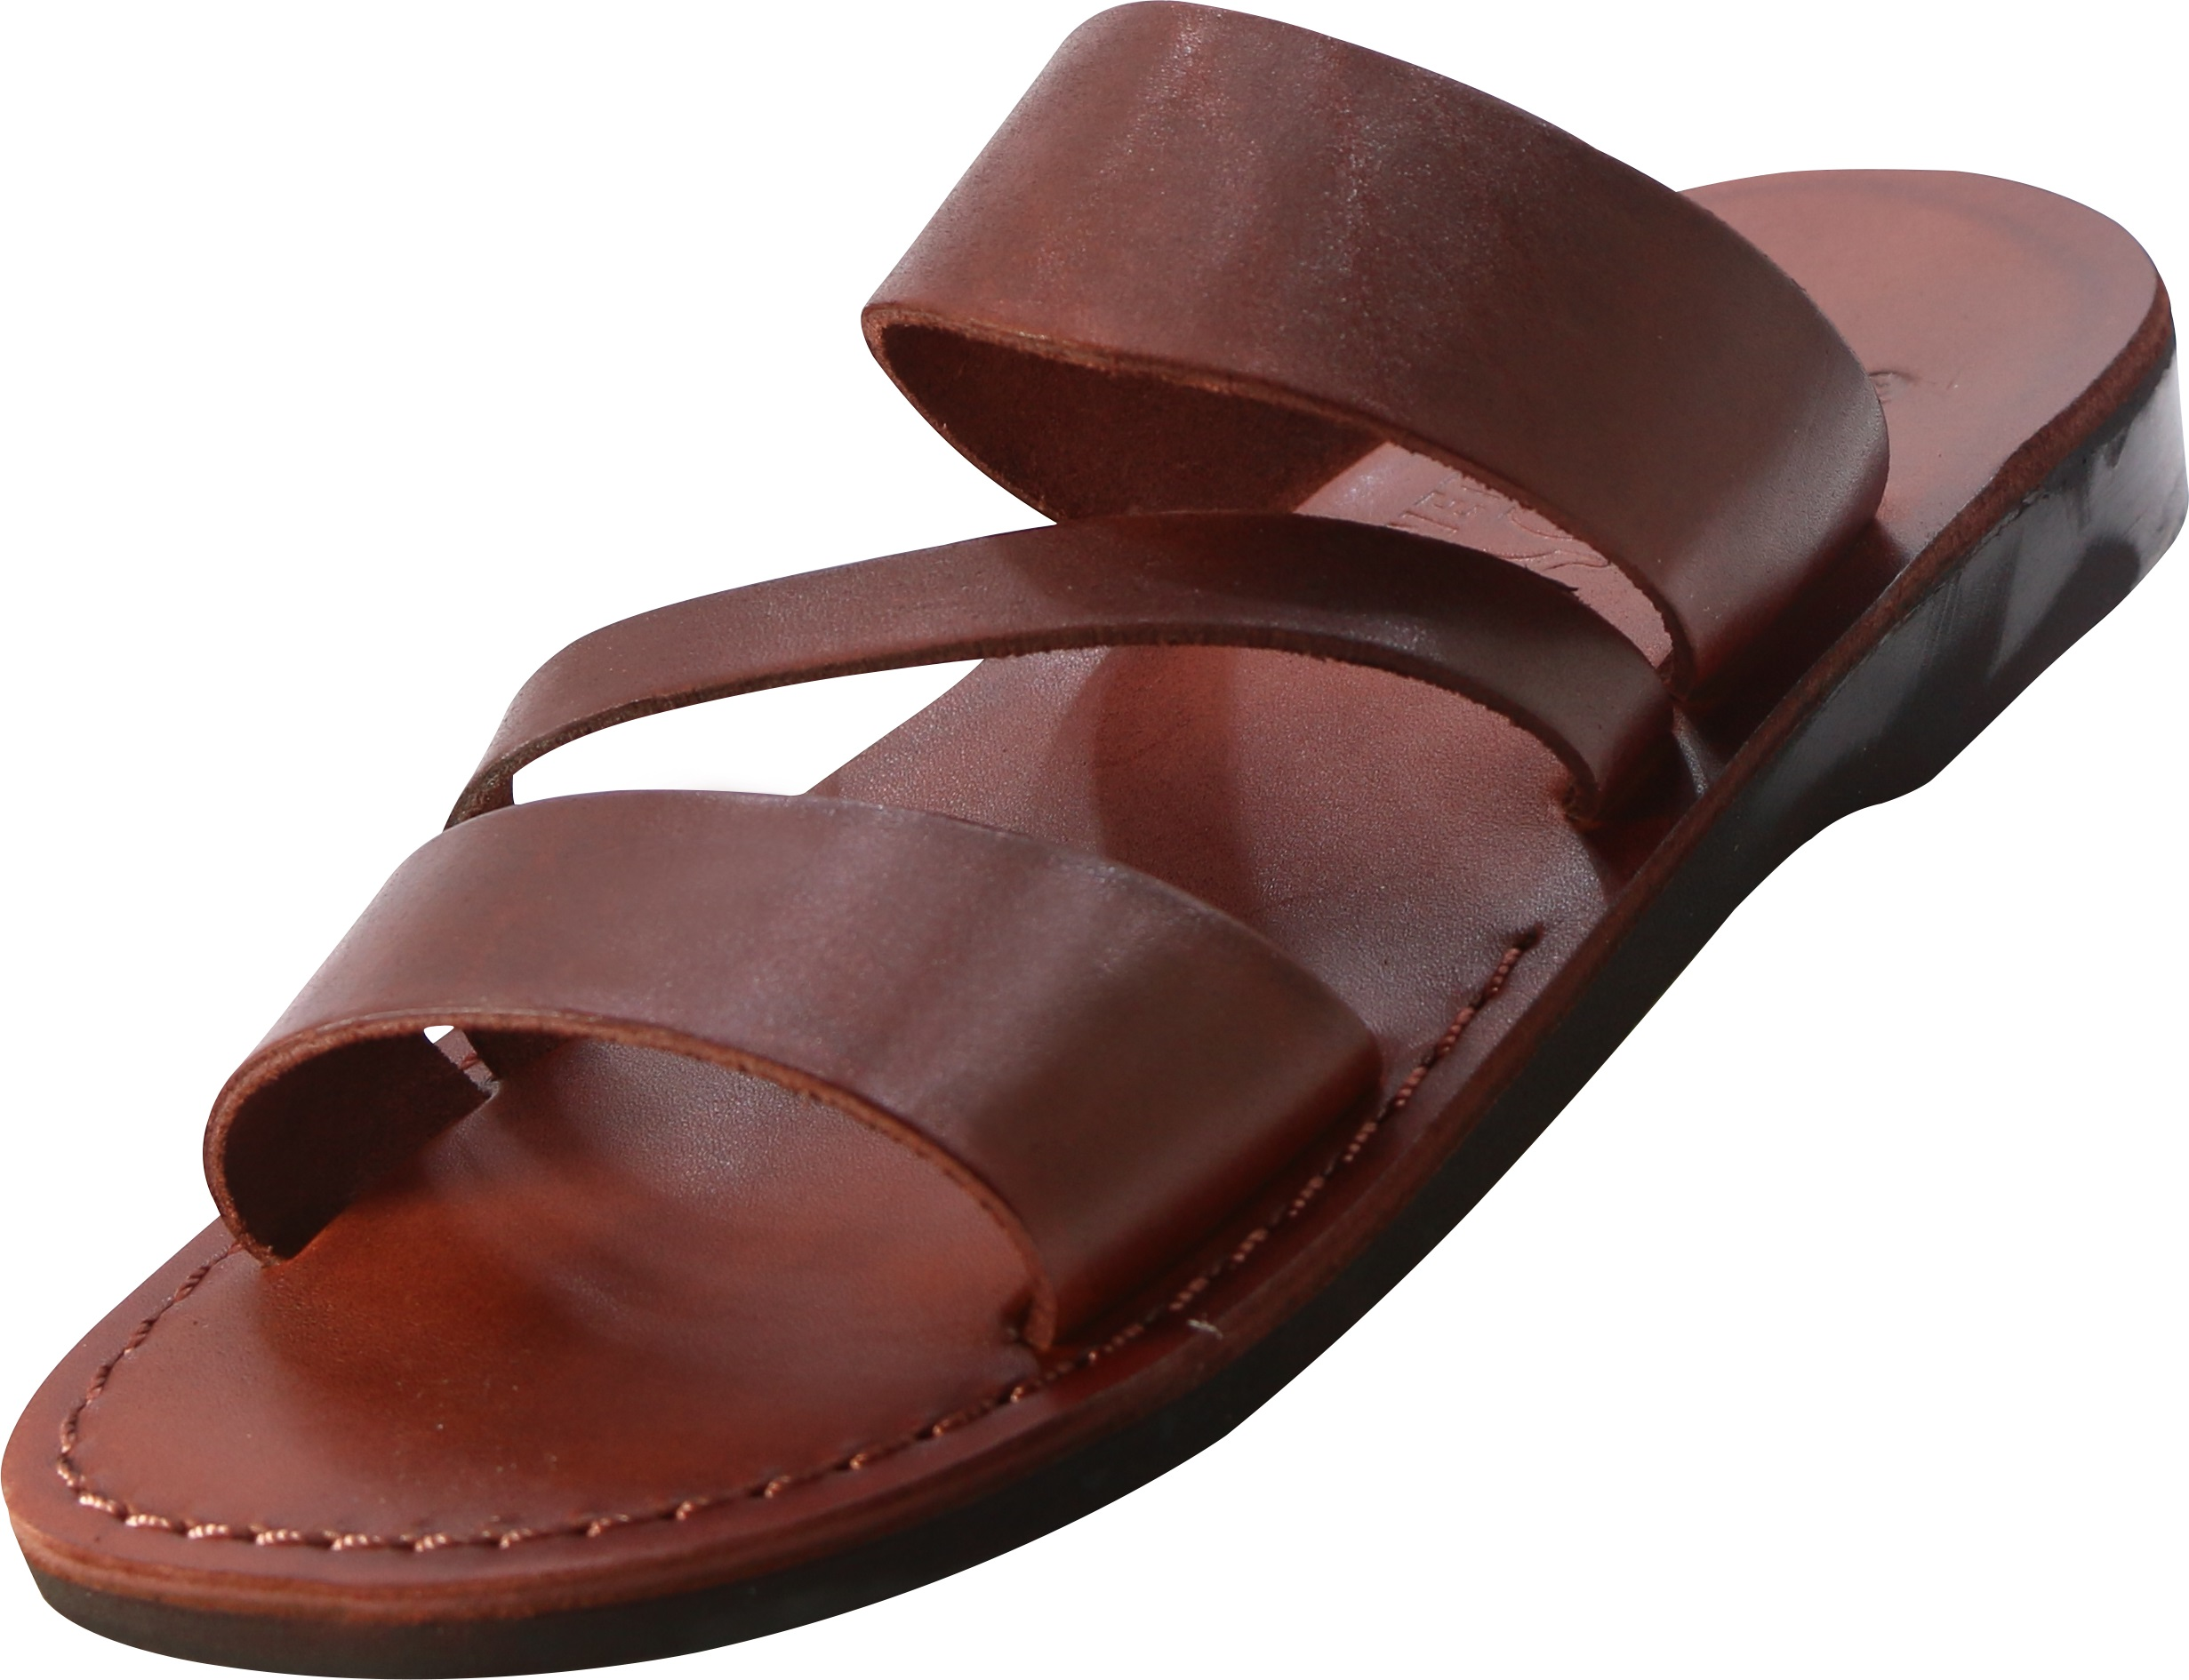 bea8e20e74e5 Buy Three Strap Slip-on Handmade Leather Biblical Sandals - Caleb ...